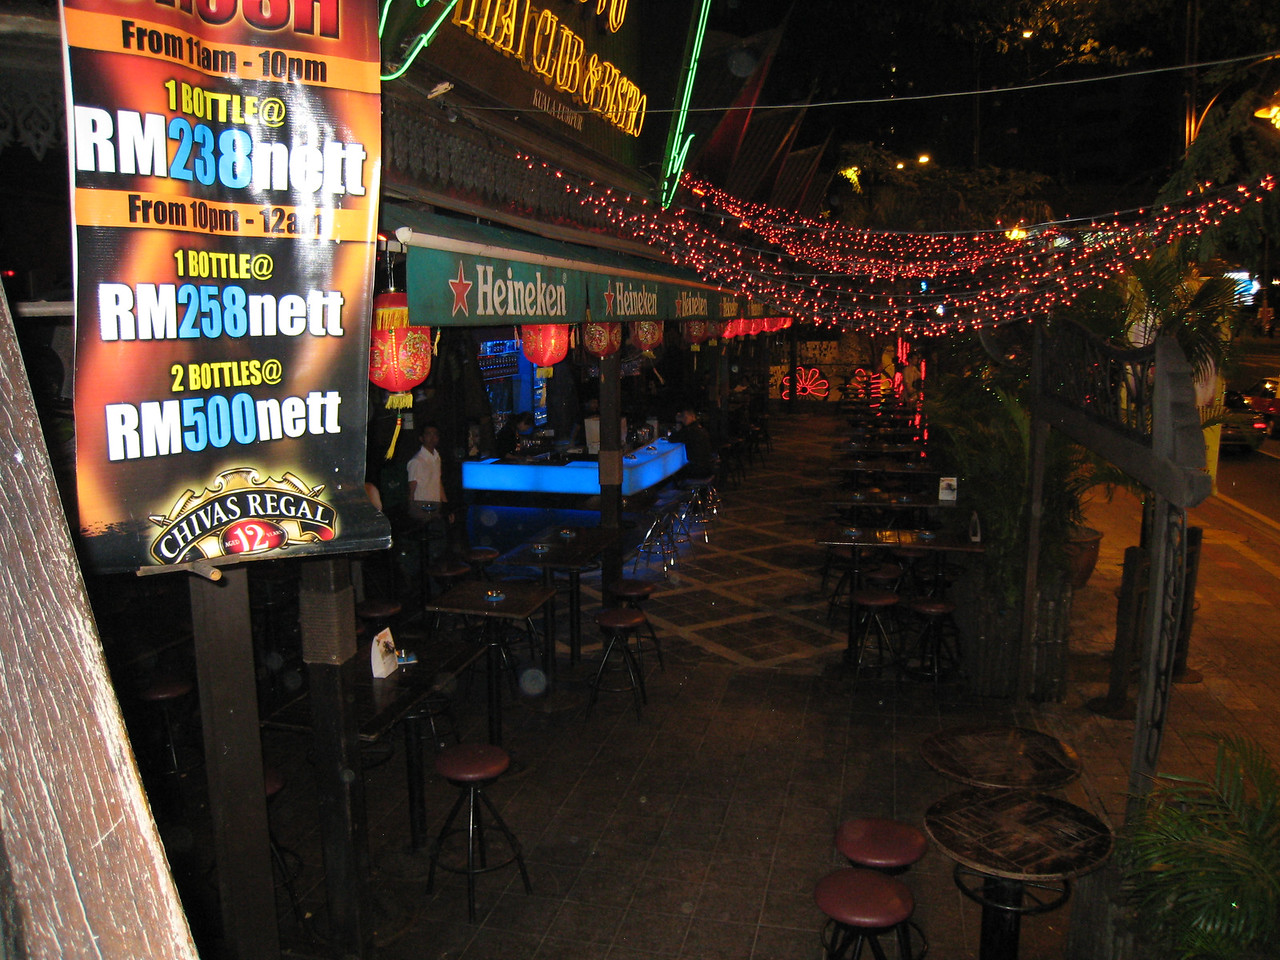 KL has many great ight clubs and bars in the downtown area.  Here's a crazy expat bar.